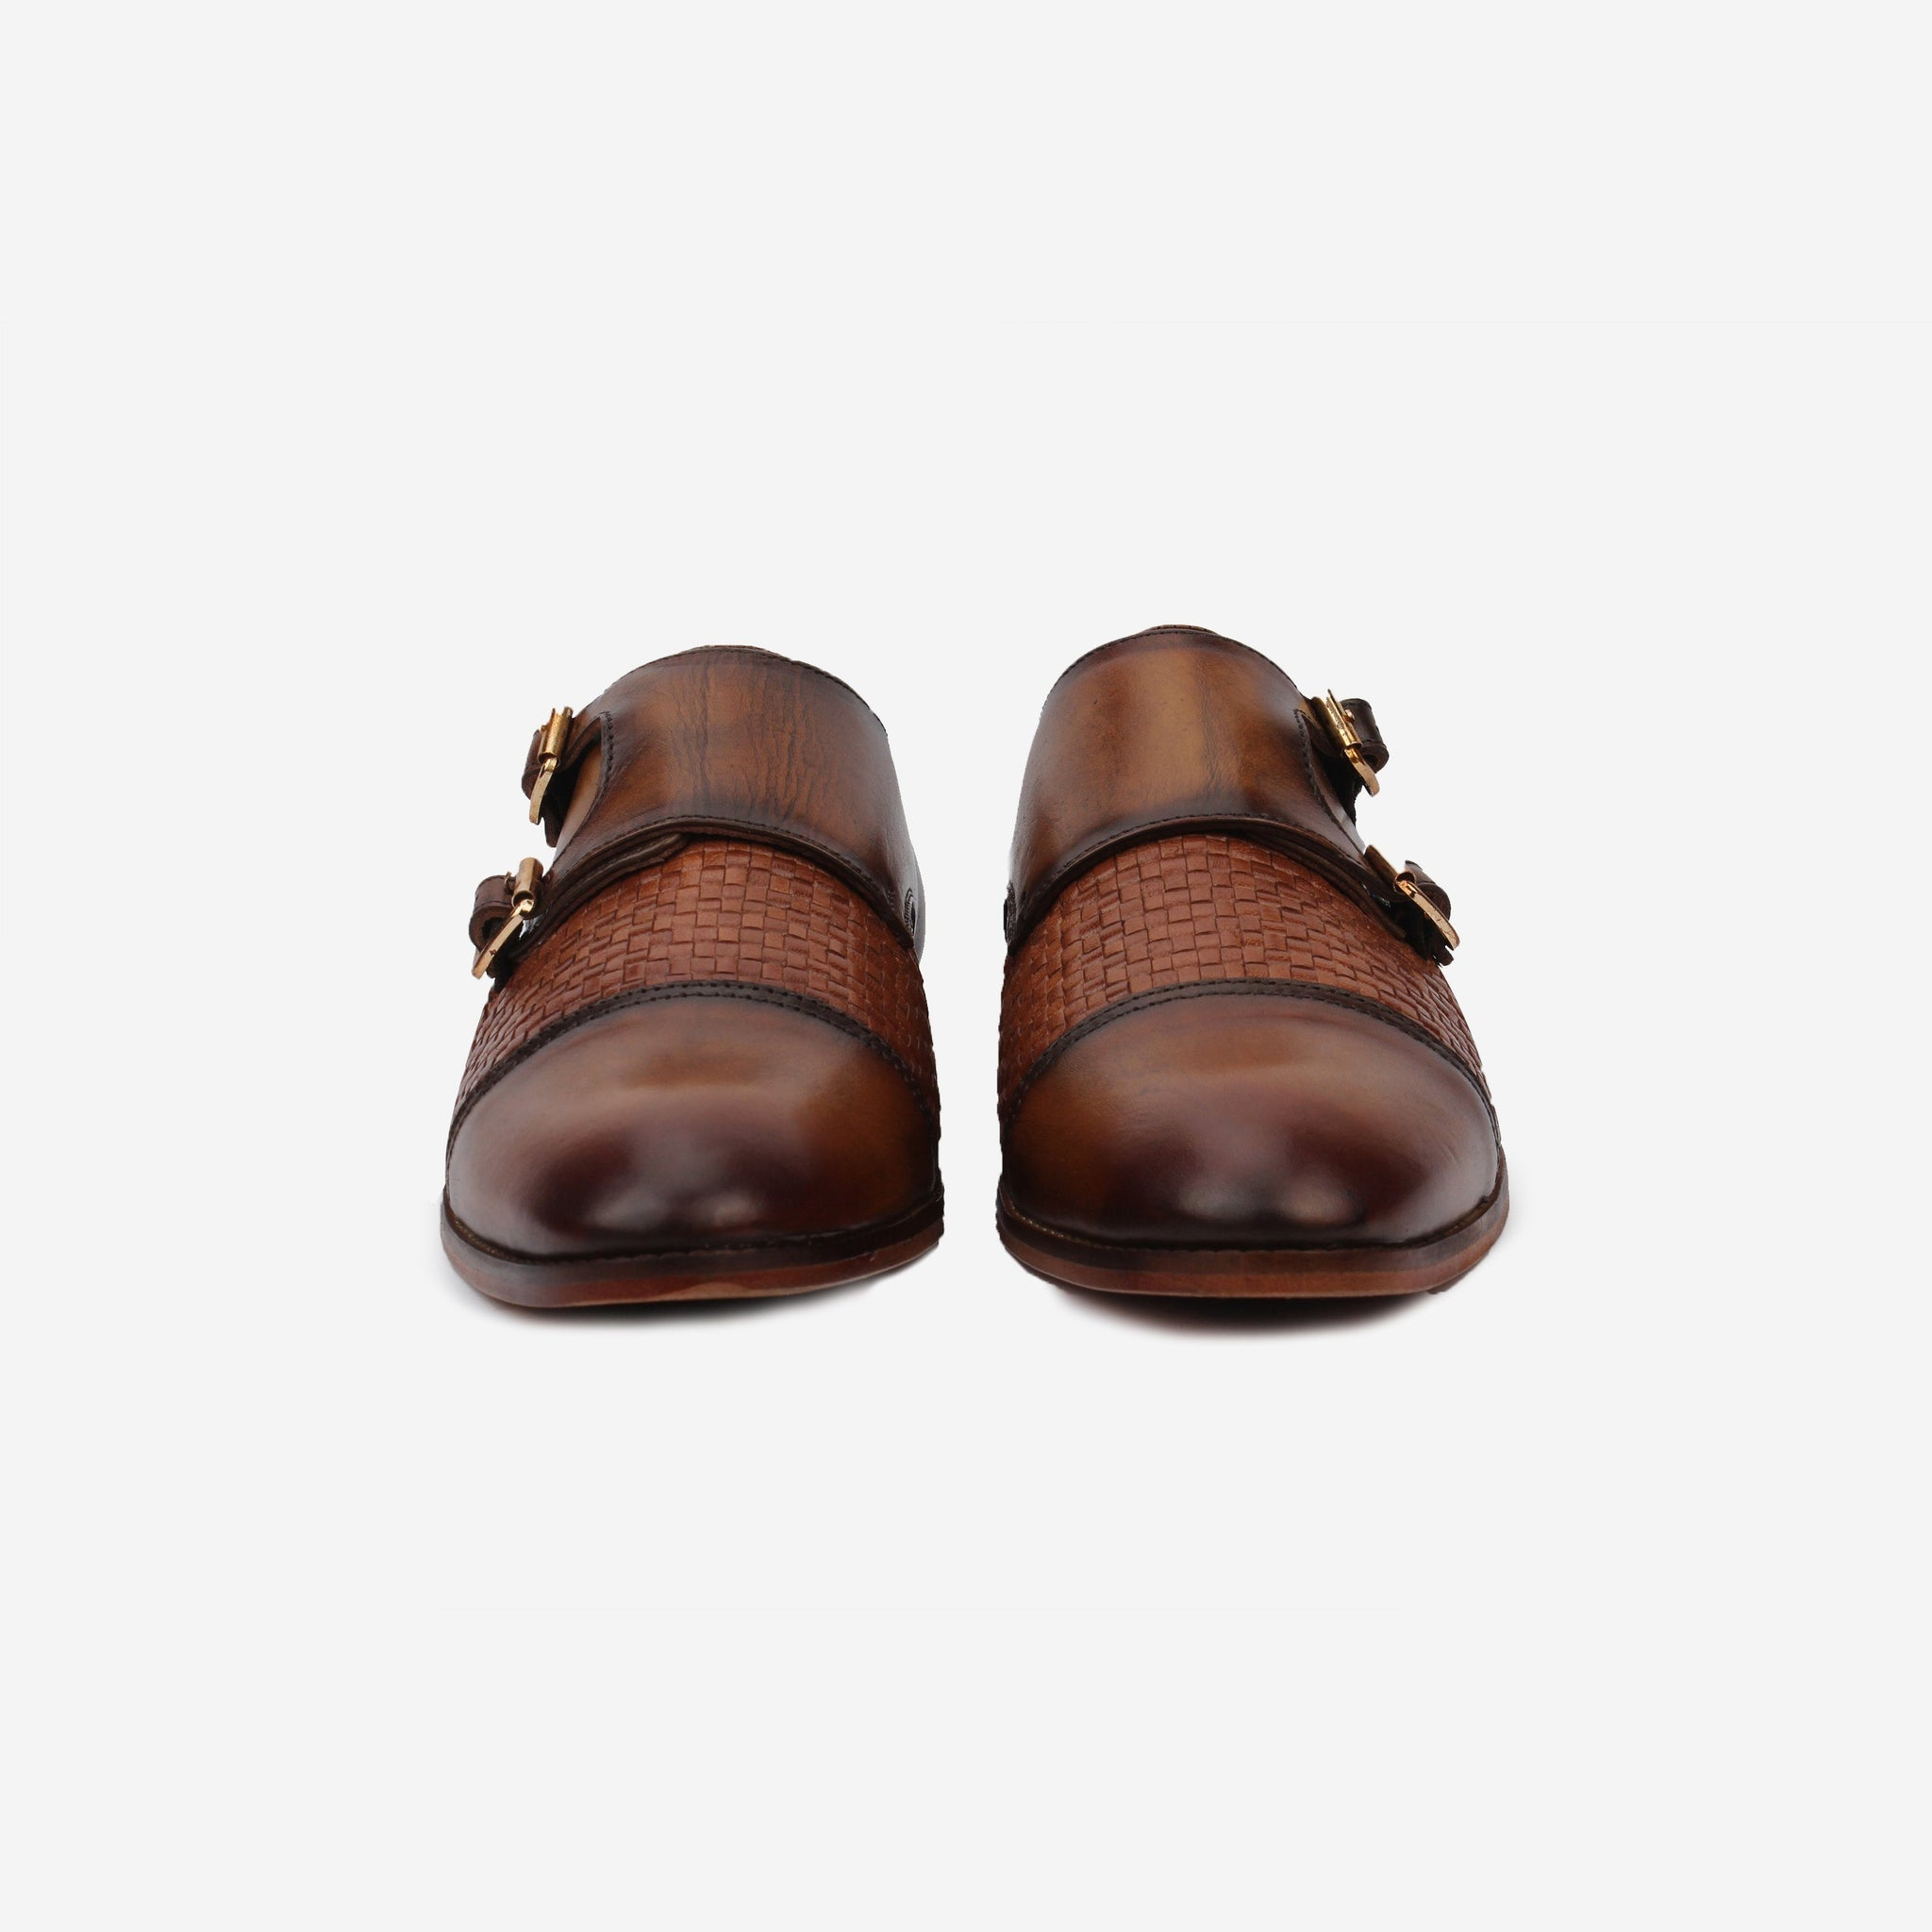 Taurus Monk Brown Thebootsco